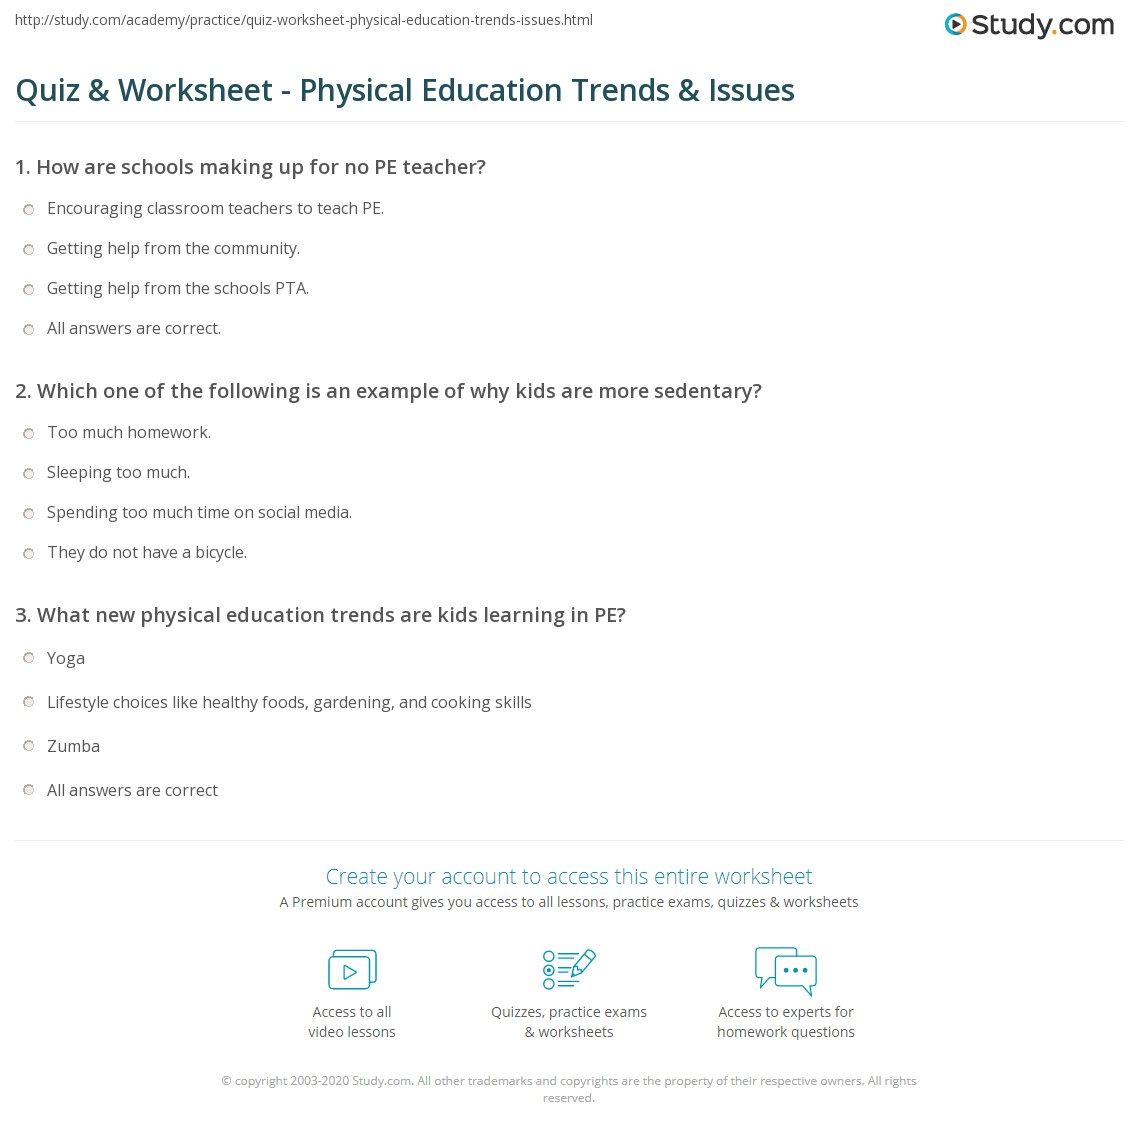 Quiz & Worksheet - Physical Education Trends & Issues | Study.com